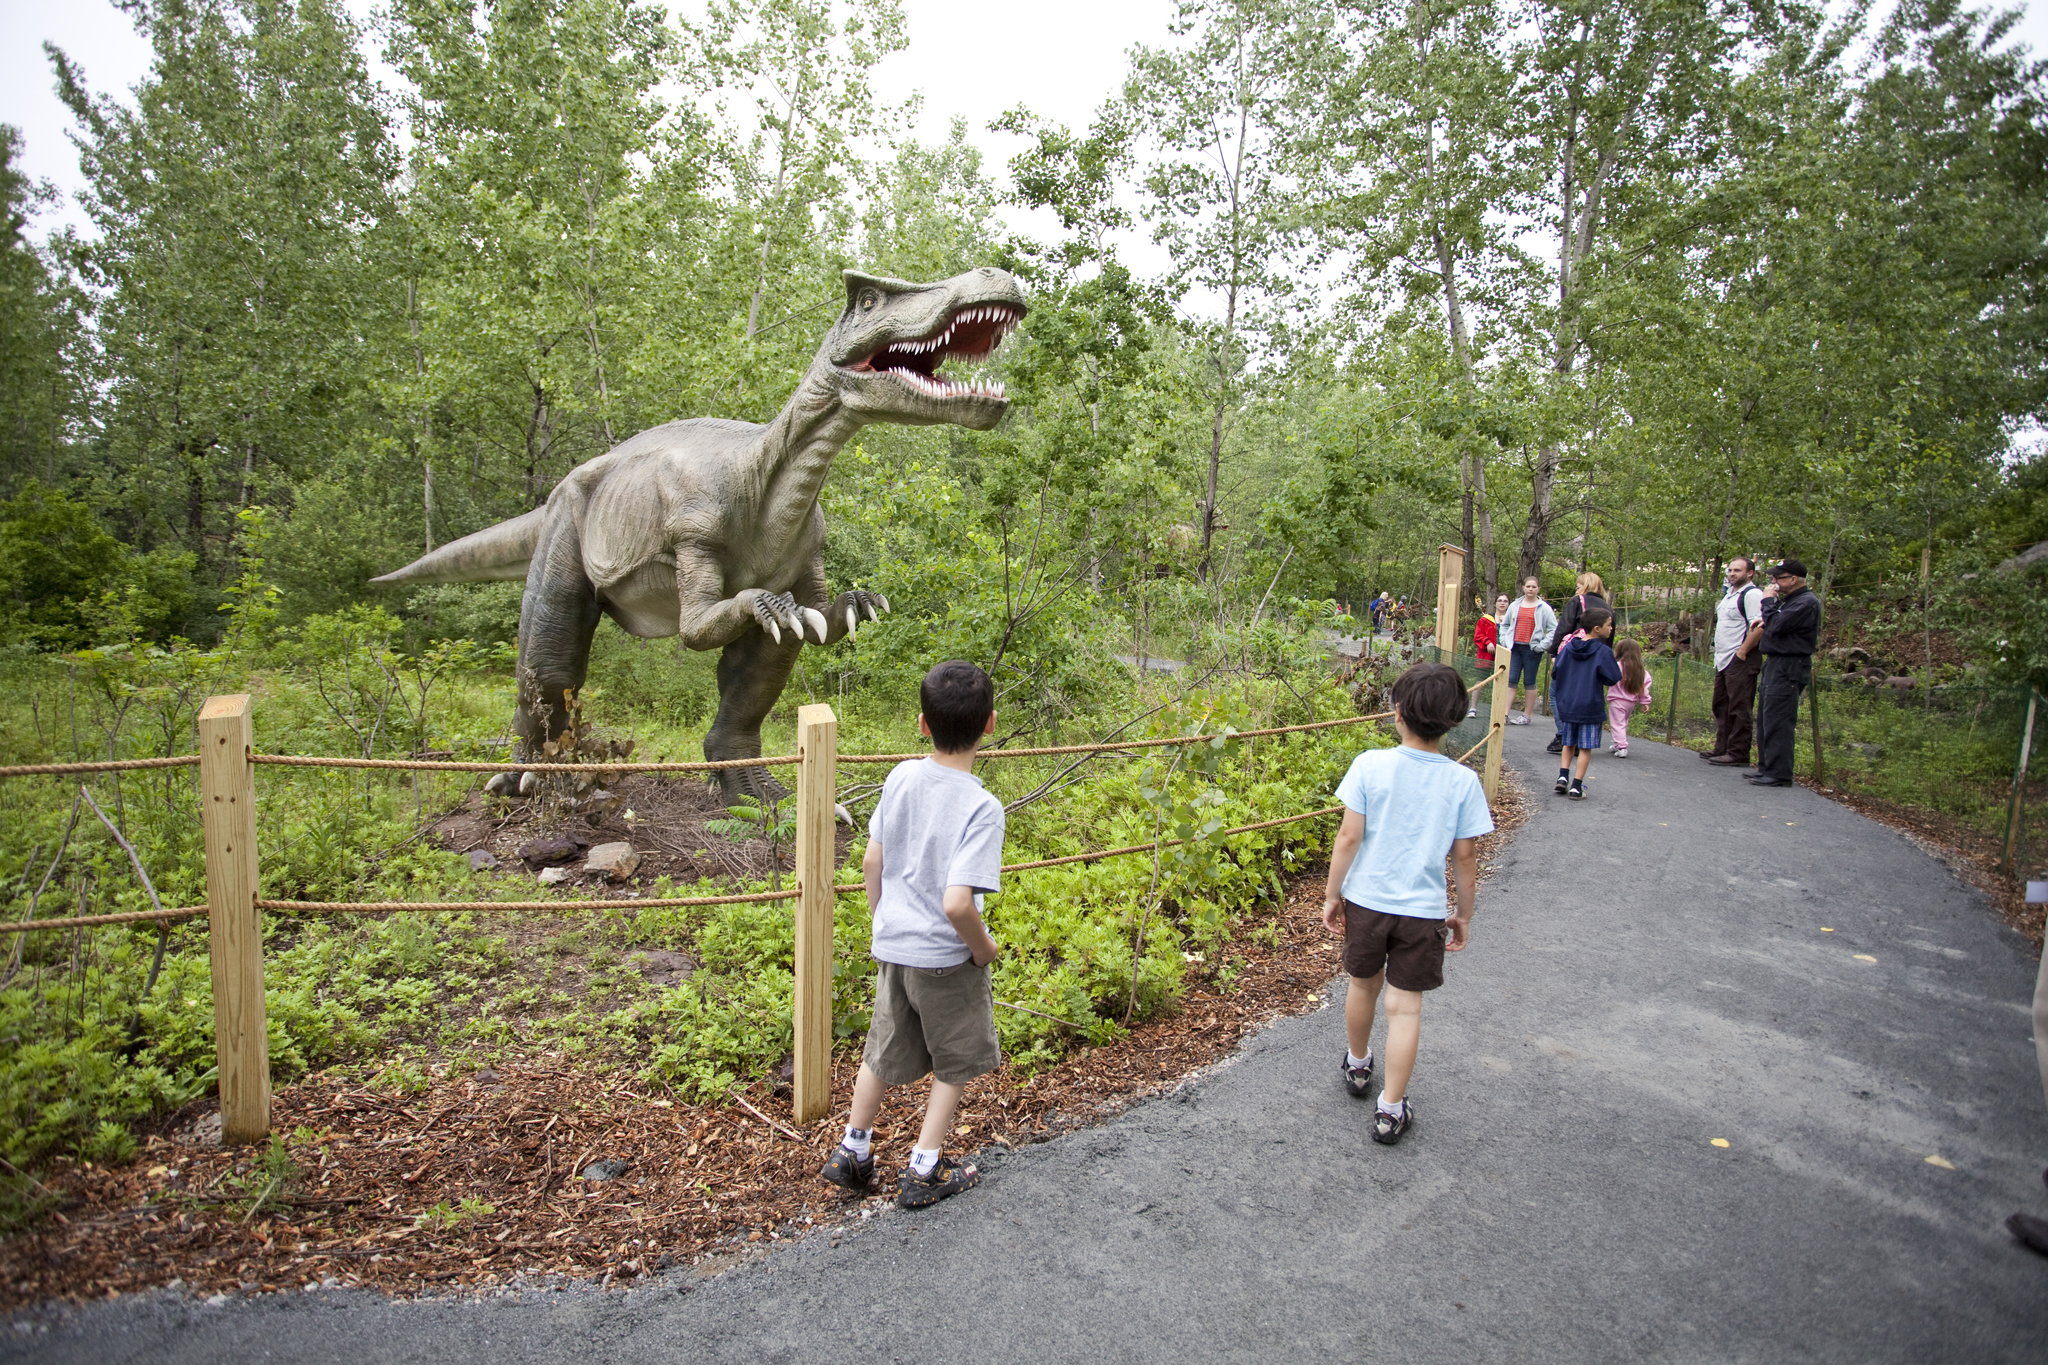 Visit Field Station: Dinosaurs in its new location